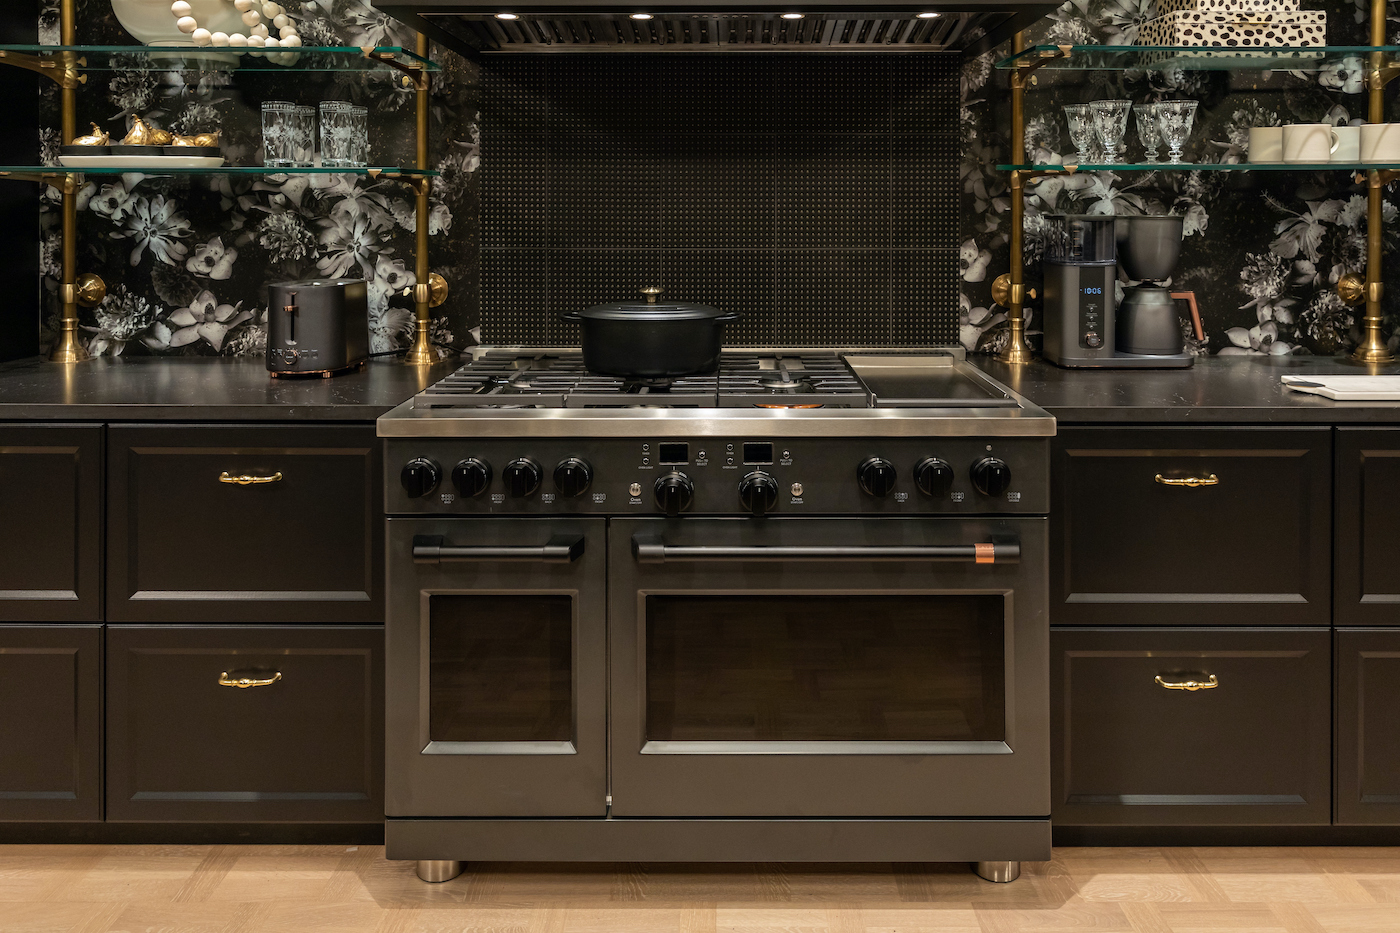 High end kitchen on display with a Le Creuset pot on a CAFÉ oven